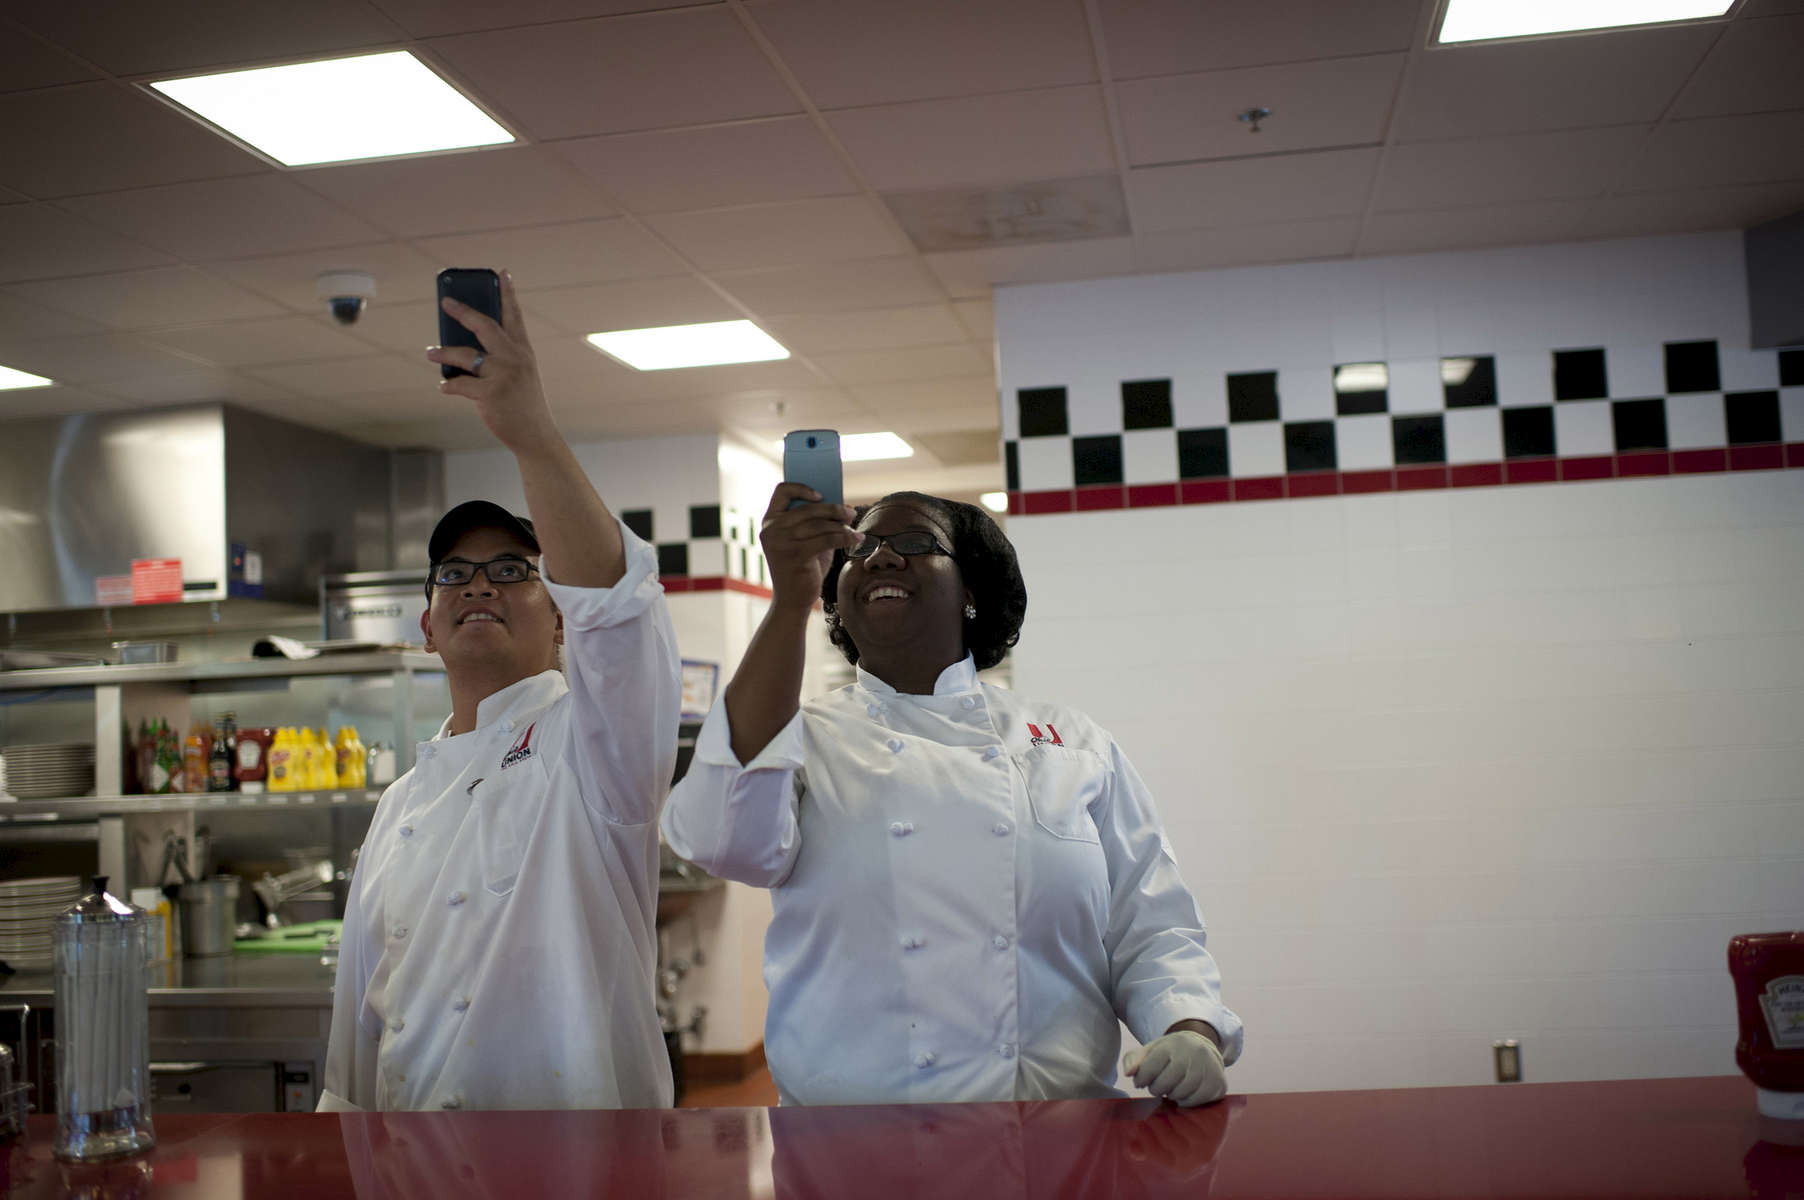 August 21, 2012 - COLUMBUS, OH:  Workers at Sloopy's Diner beam as they photograph President Barack Obama with their cell phones during his visit to Columbus, OH. (Scout Tufankjian for Obama for America/Polaris)